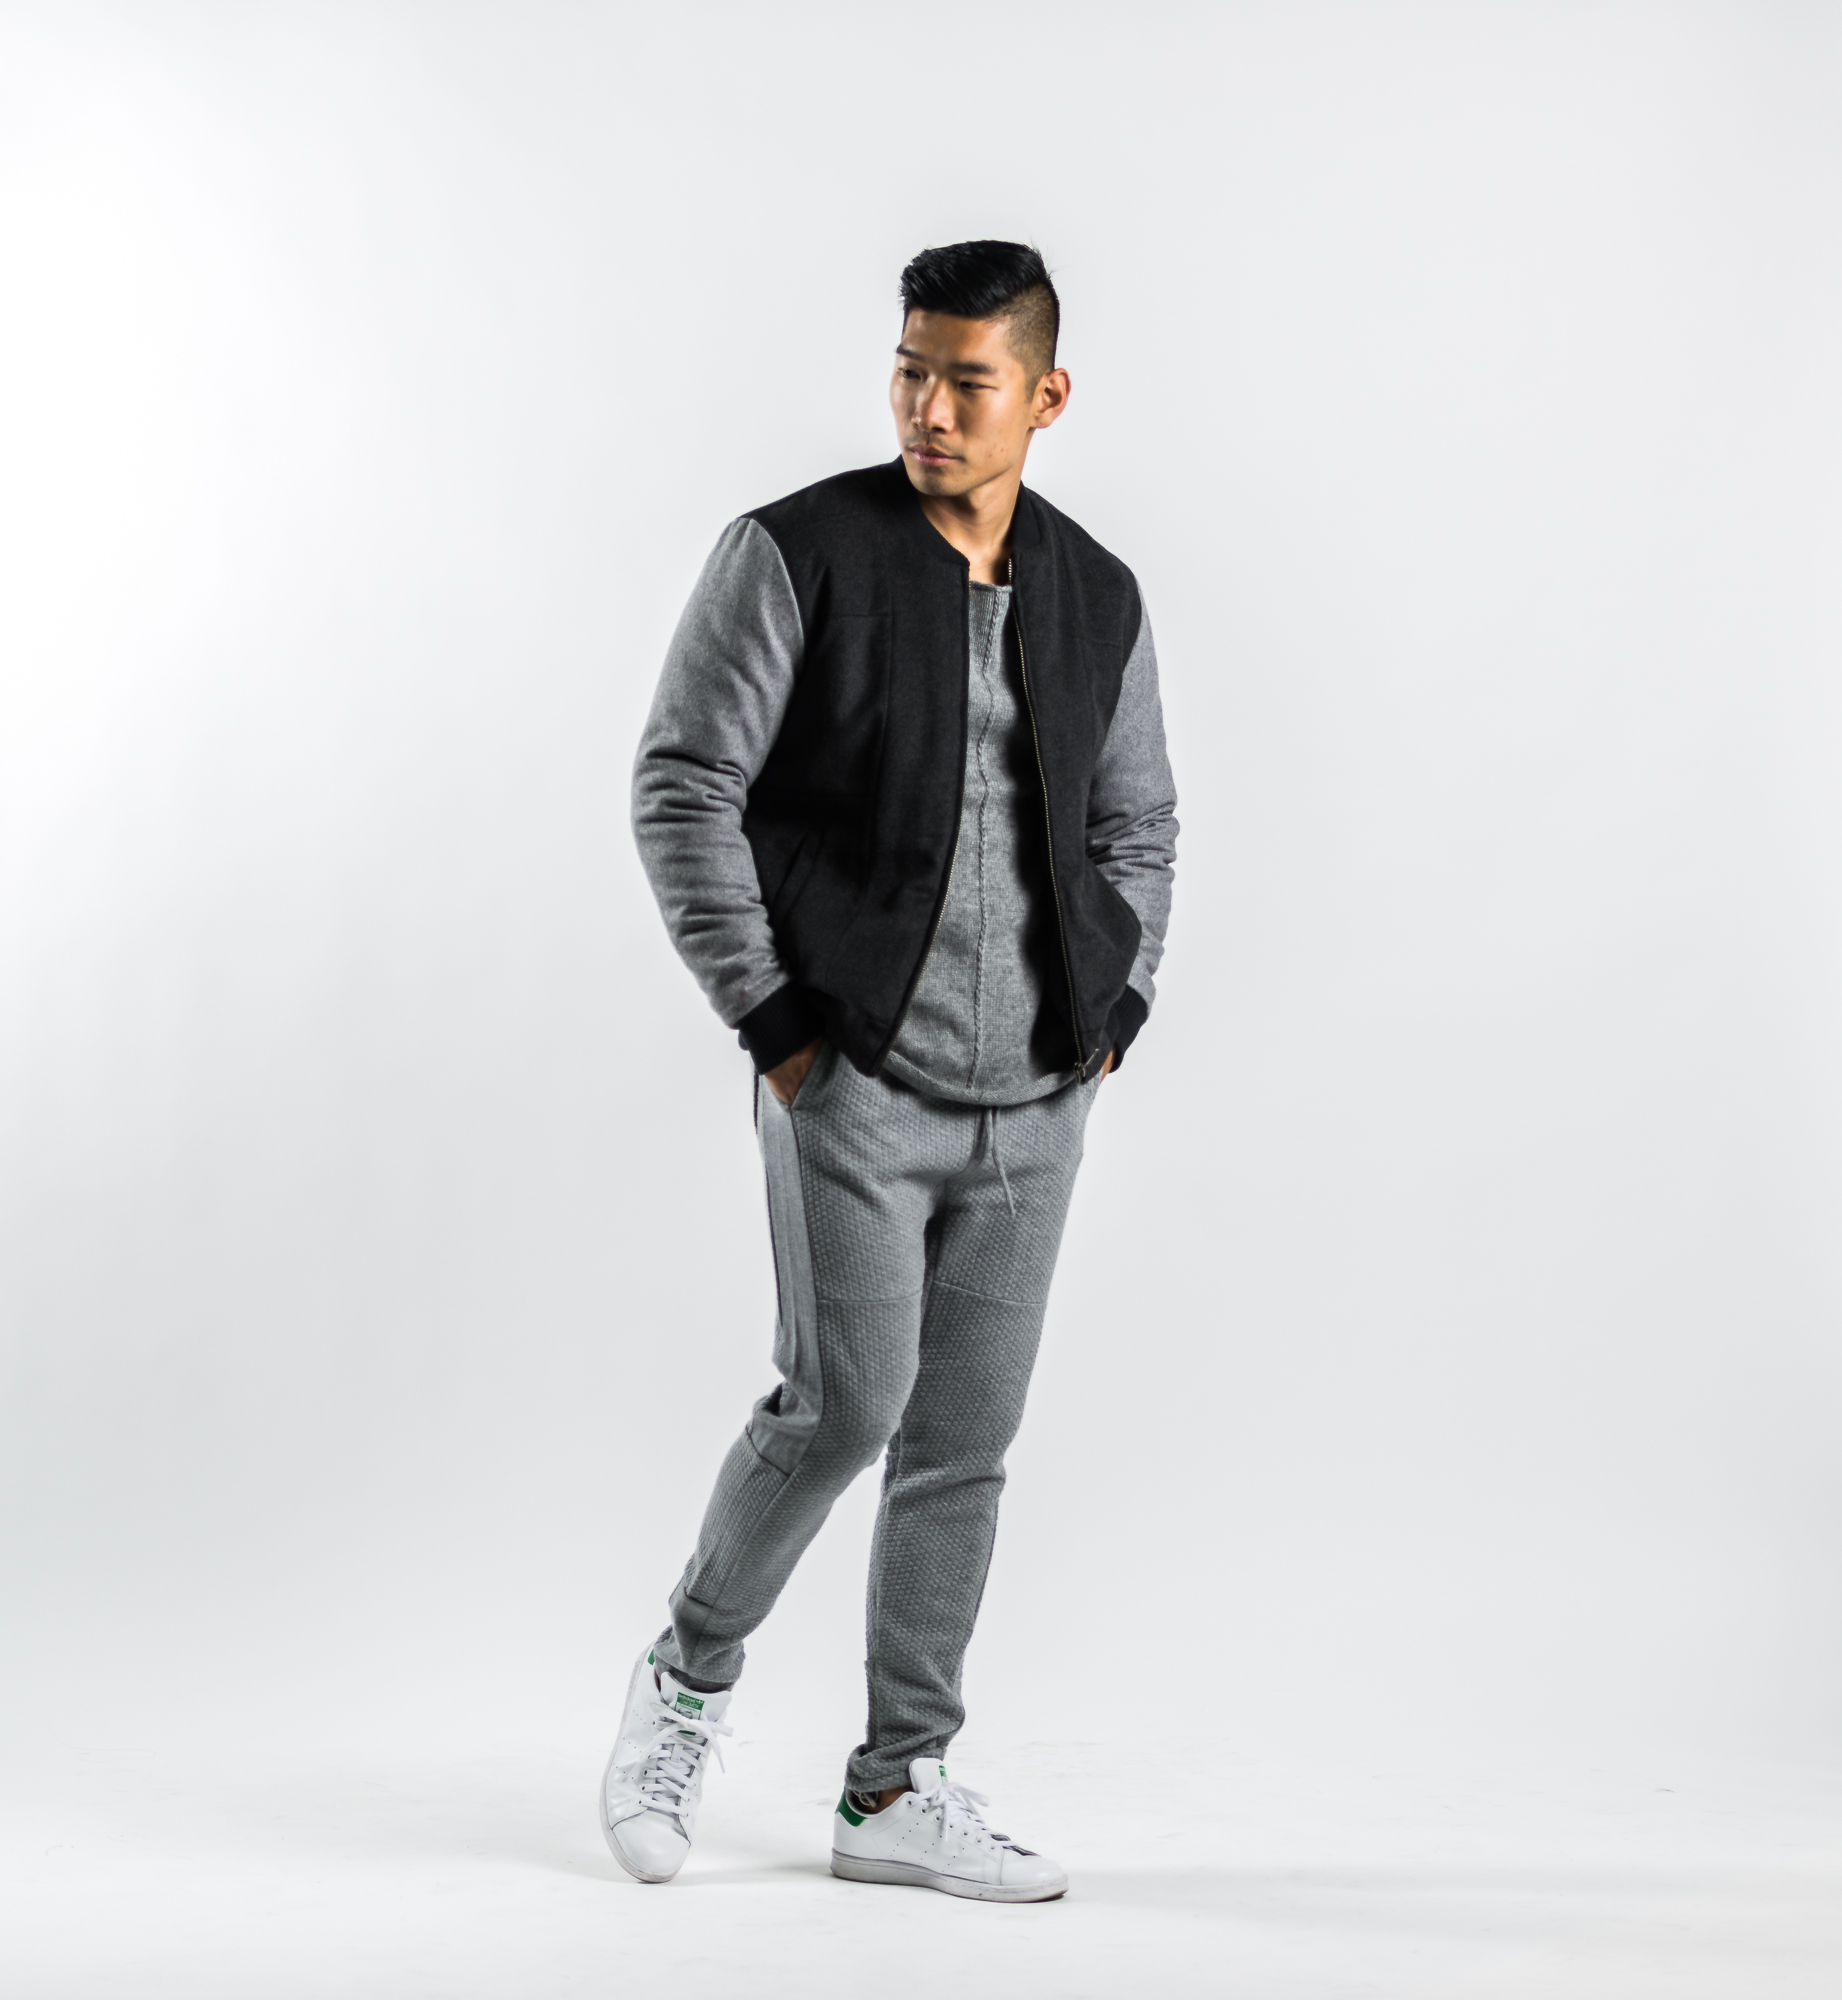 Leo Chan in Strand Clothing